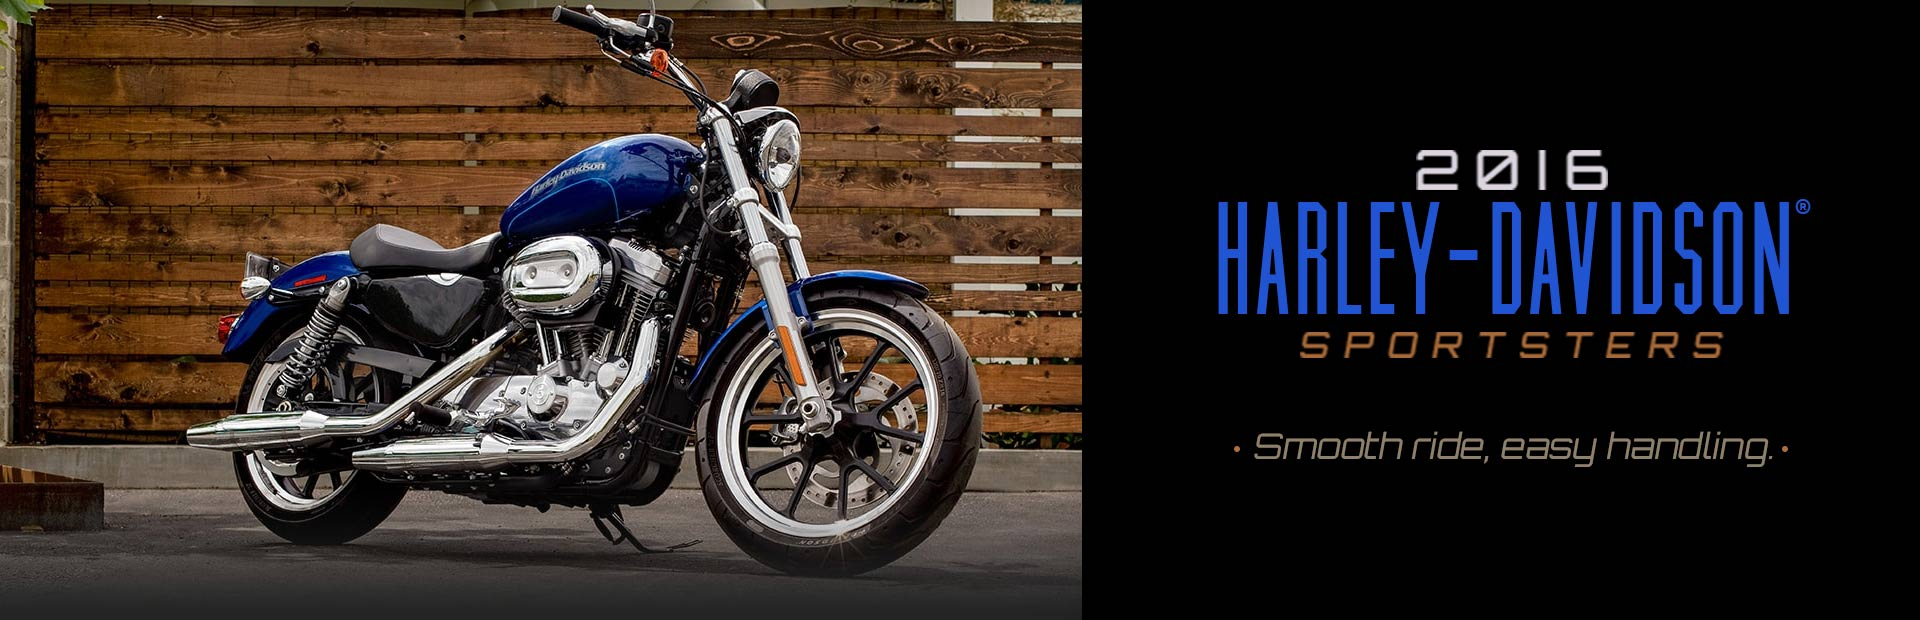 2016 Harley-Davidson® Sportsters: Click here to view the models.